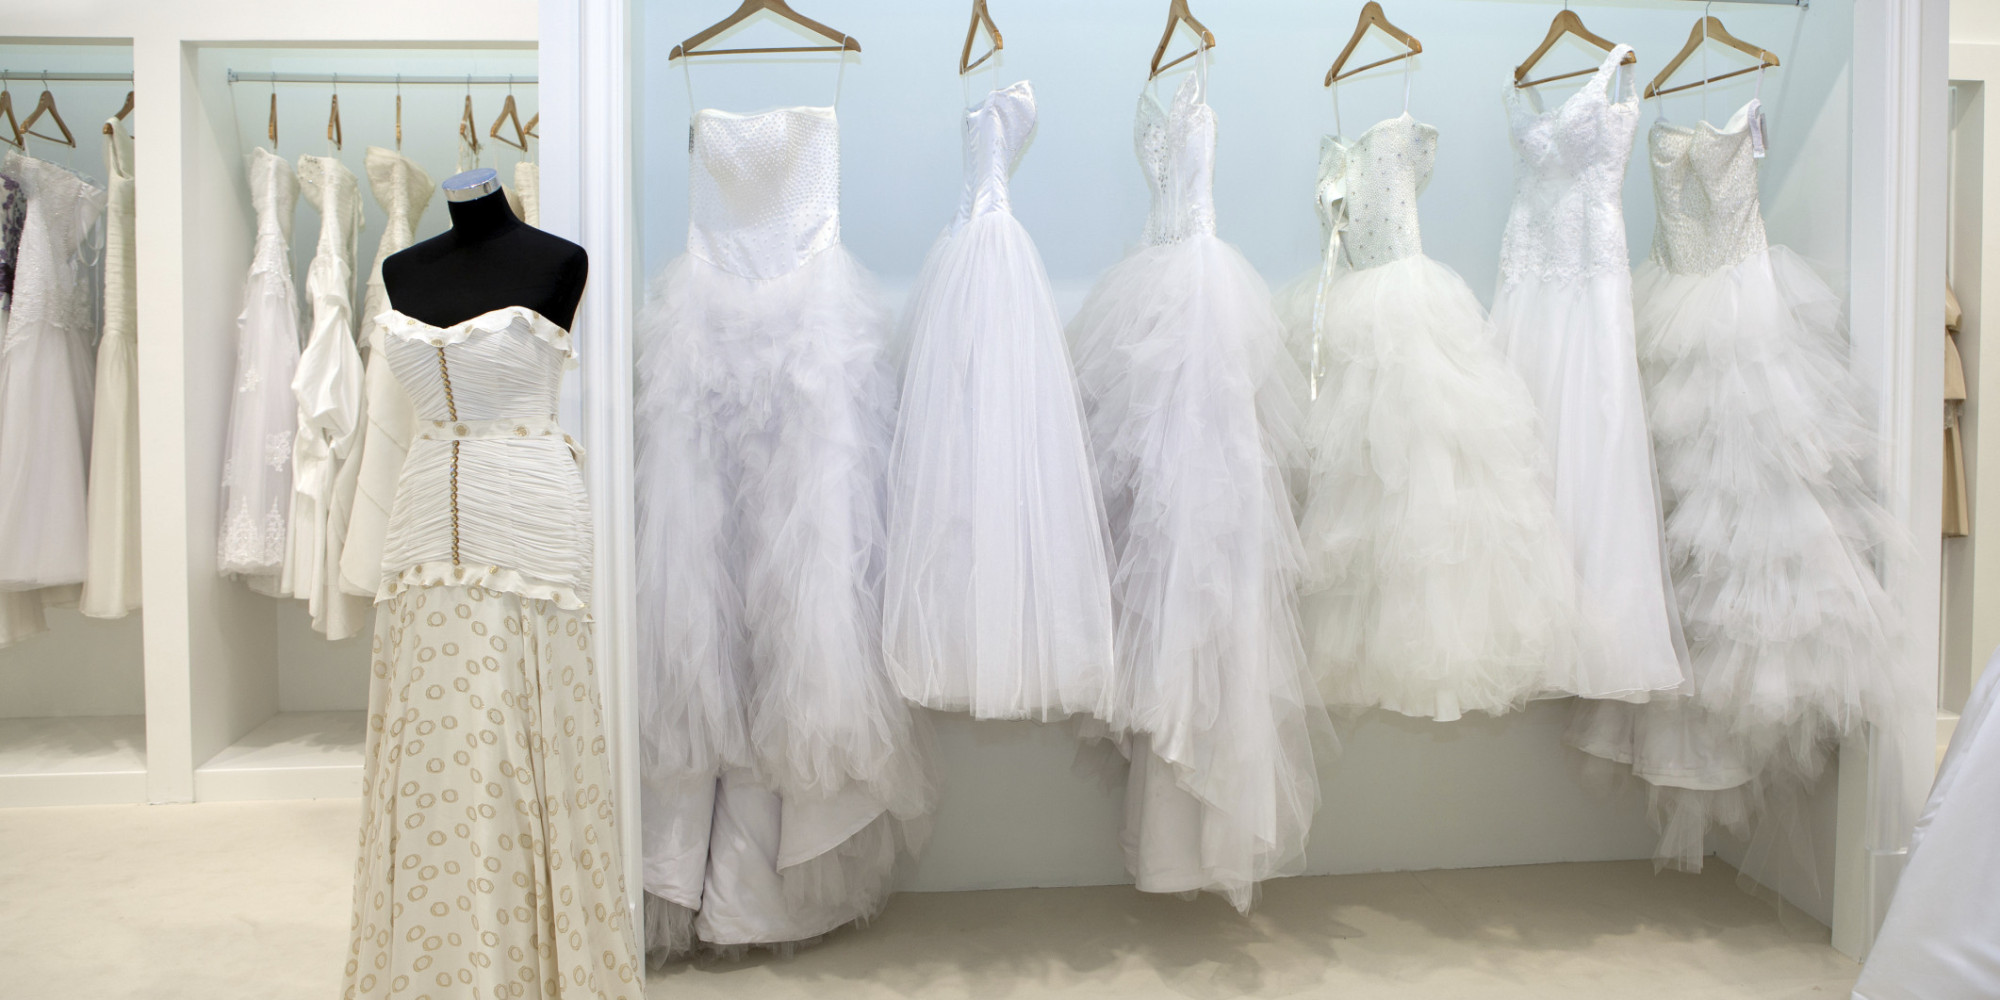 The 5 Biggest Mistakes Brides Make When Shopping For A Wedding Dress VIDEO